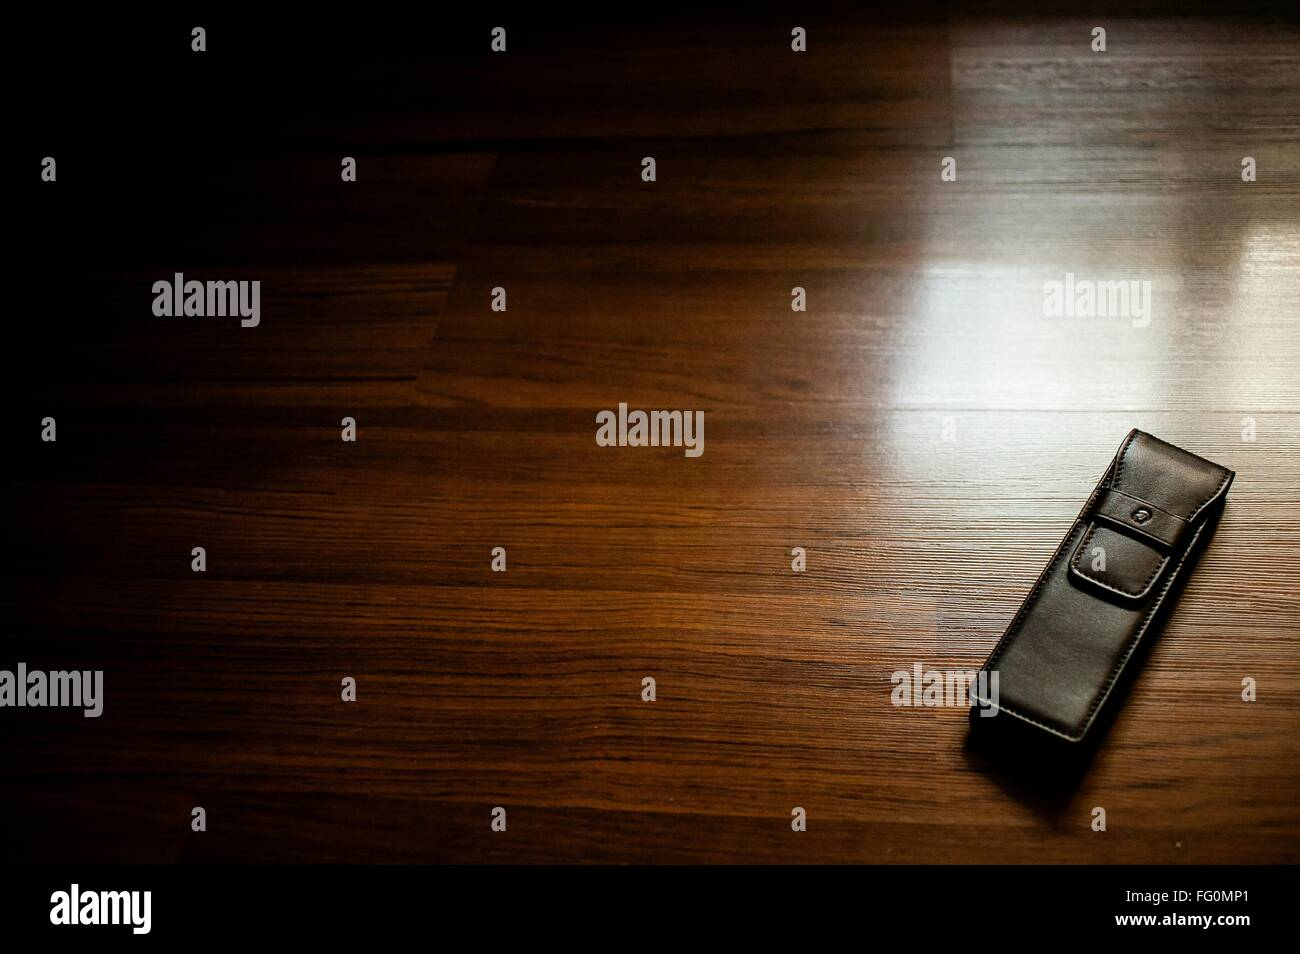 High Angle View Of Leather Phone Cover On Wooden Floor - Stock Image